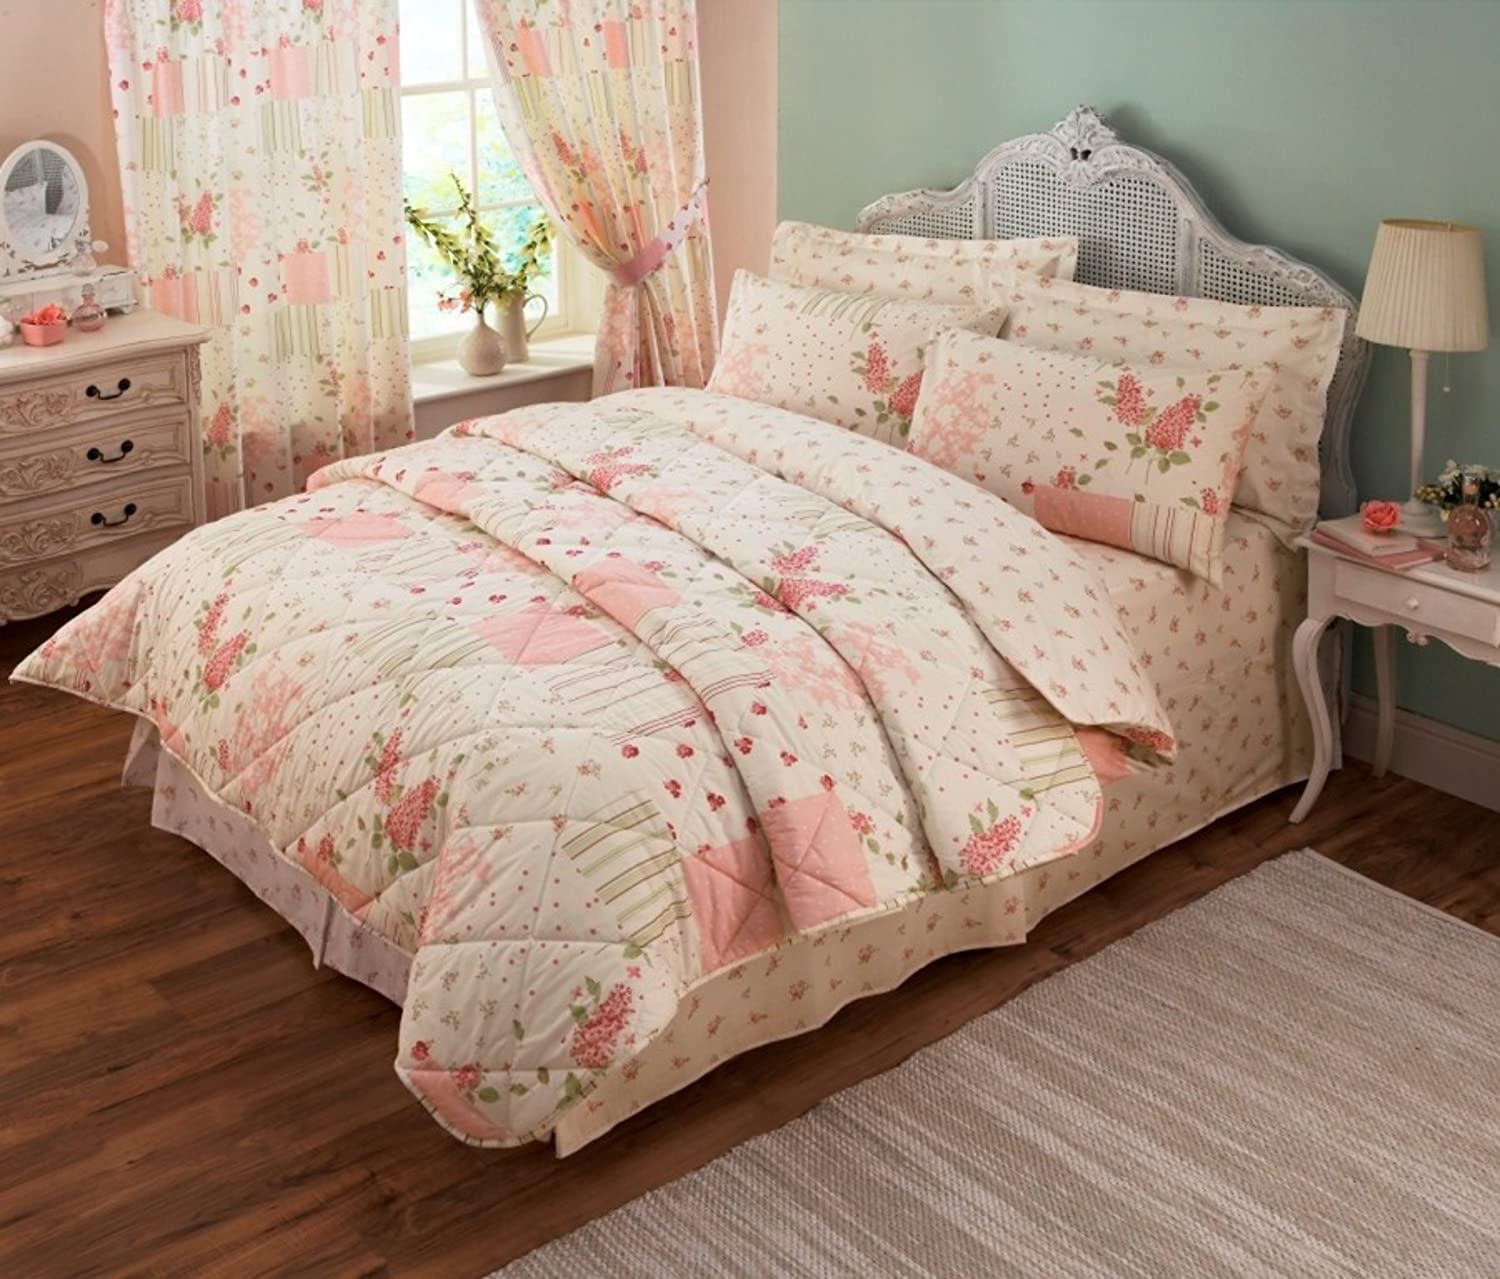 Pink Bed Sets And Curtains Birdhouses Duvet Cover Girls Pink Bedding White Pink Duvet With